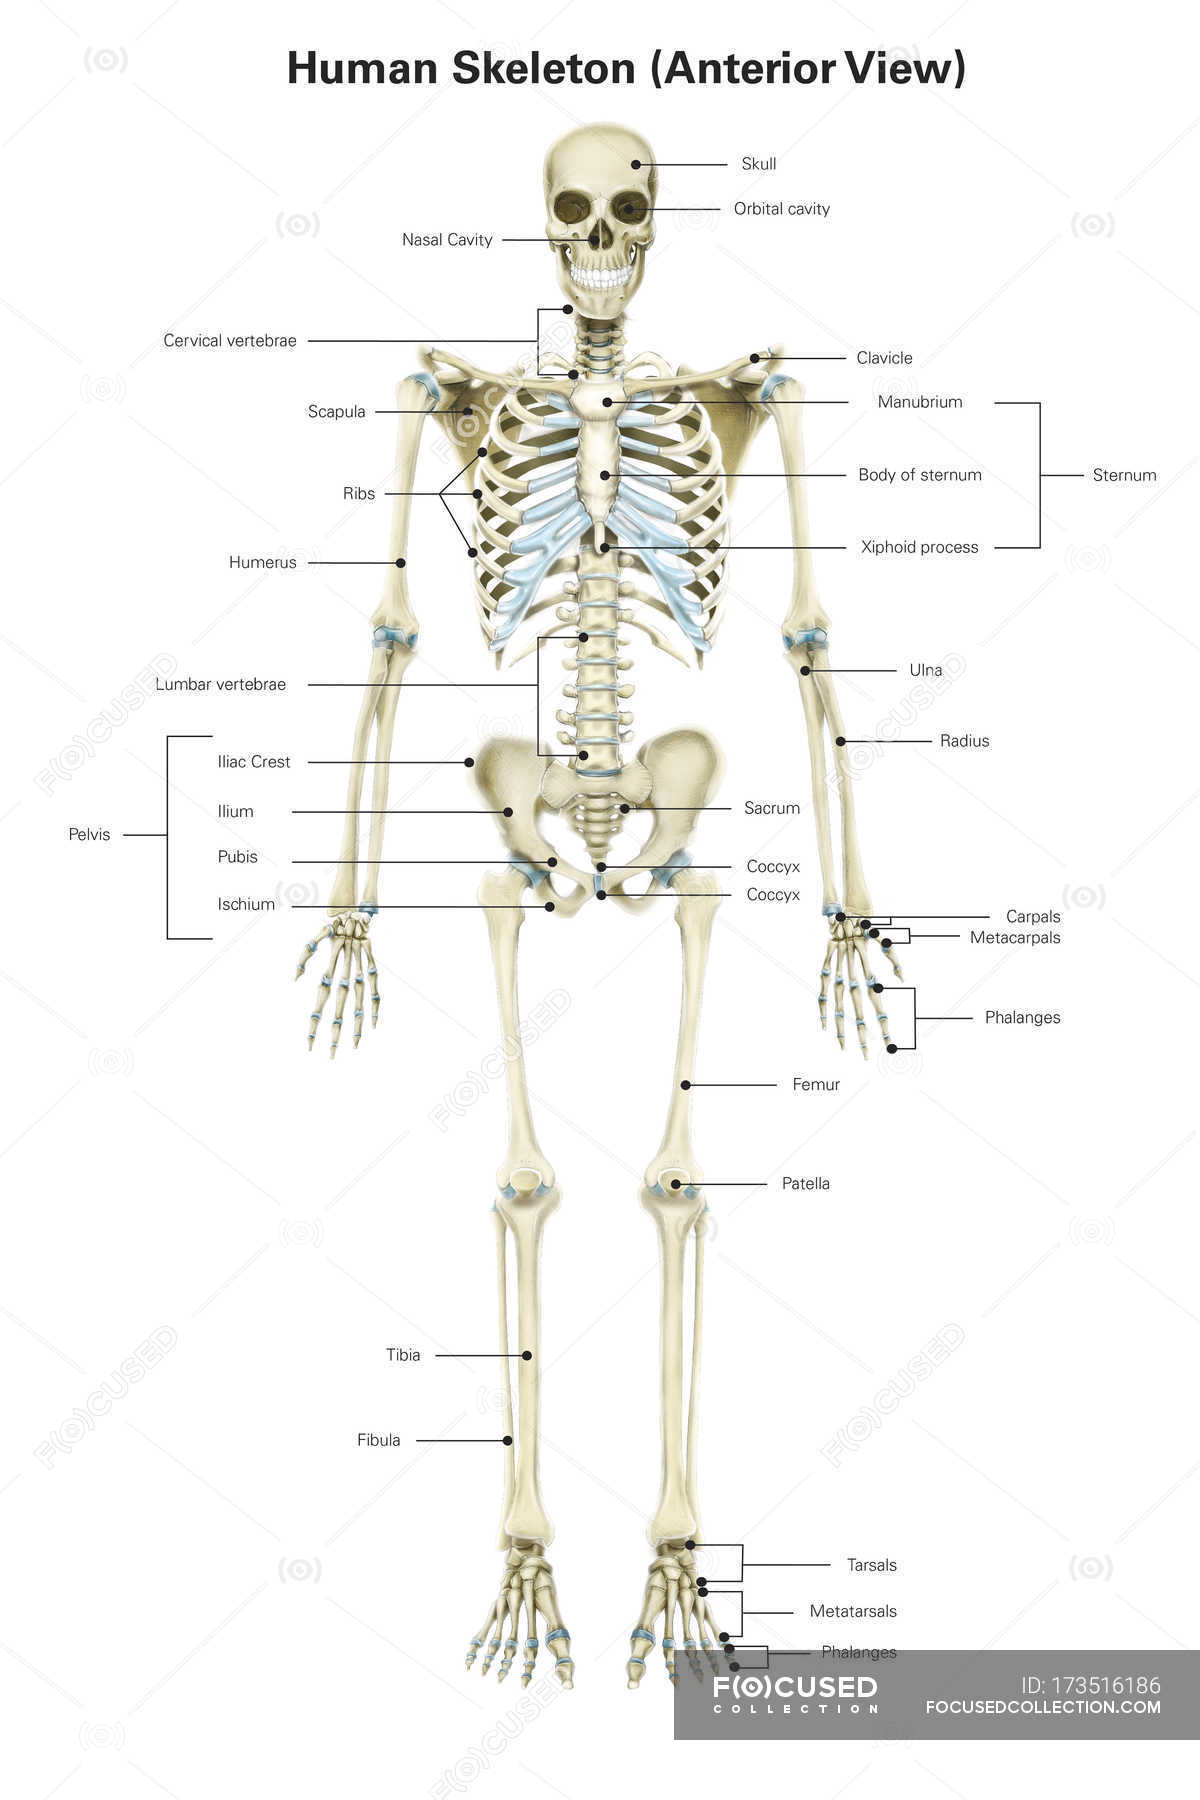 Human Skeletal System With Labels Vertical View